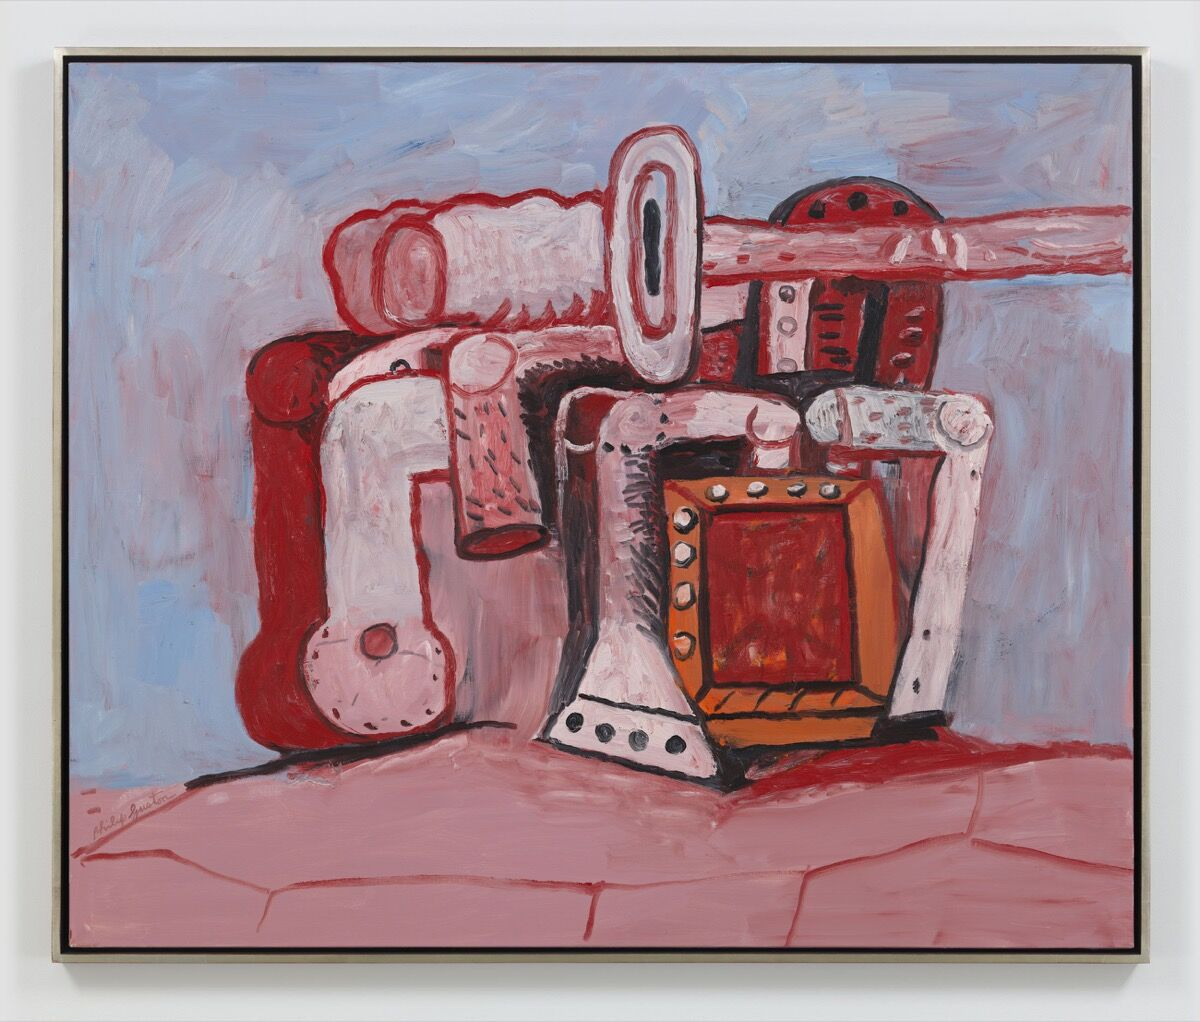 Philip Guston, Forms of Rock Ledge, 1975. Courtesy of Hauser & Wirth.